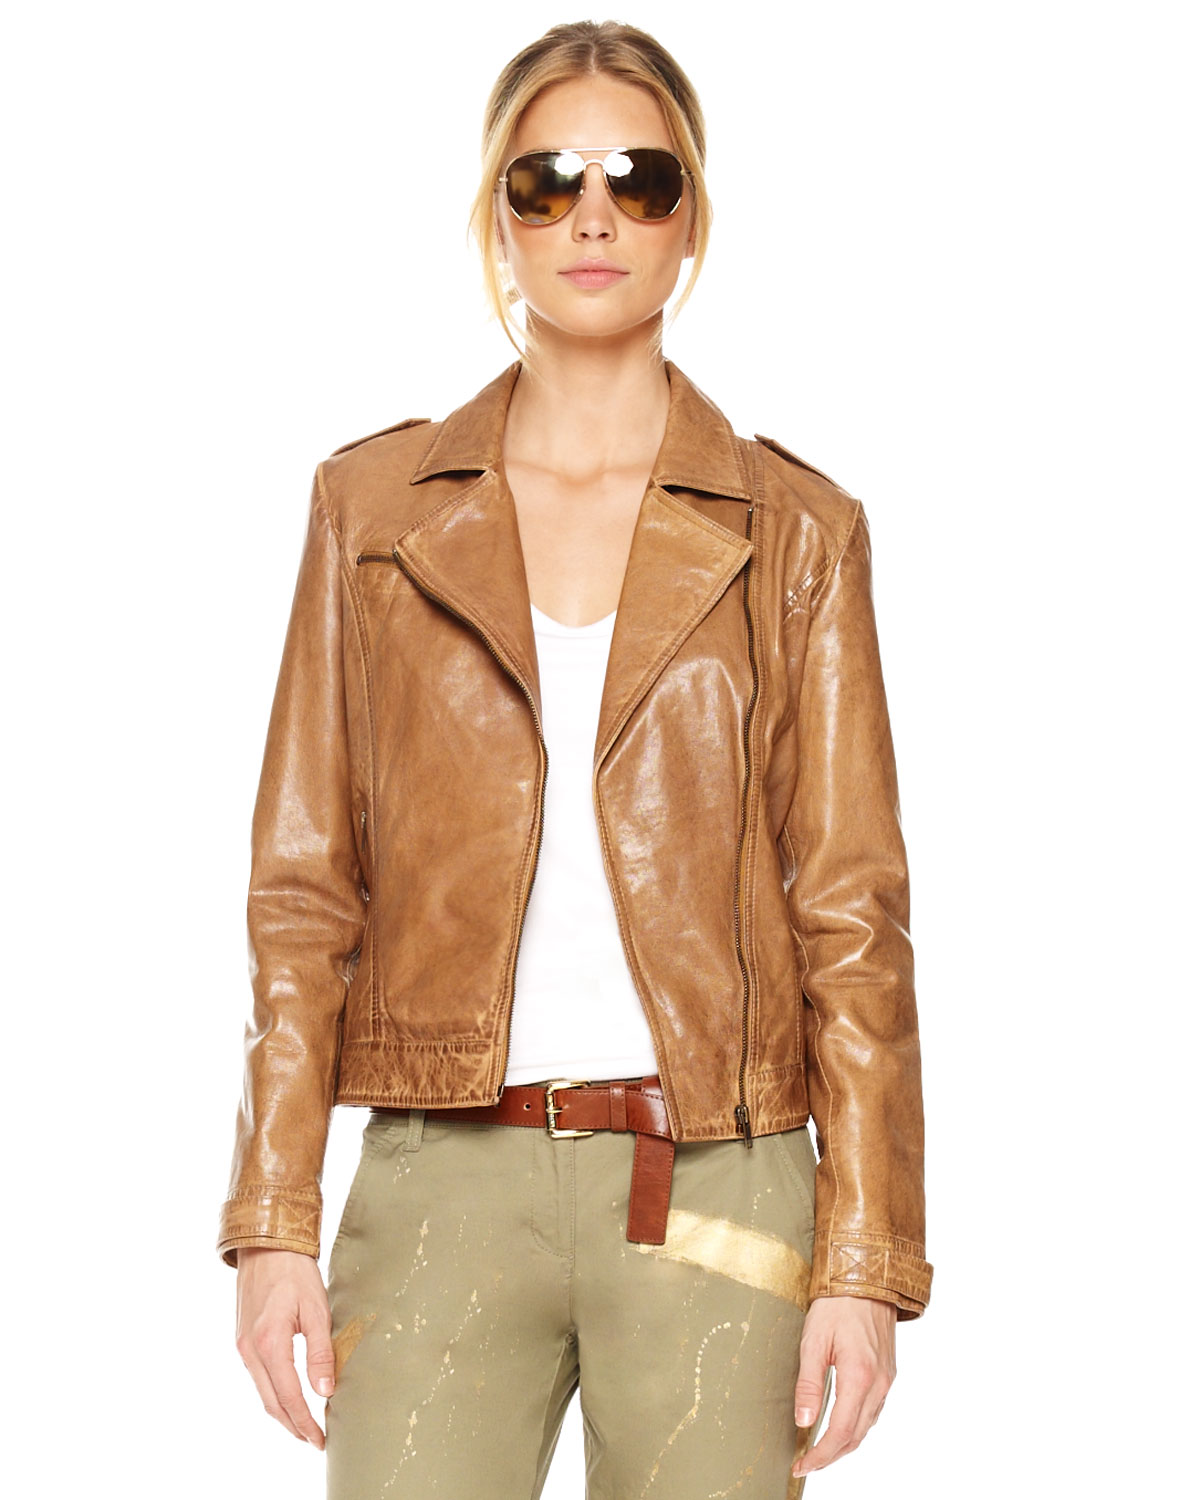 women-petite-jacket-butterscotch-leather-nudes-brasilia-girls